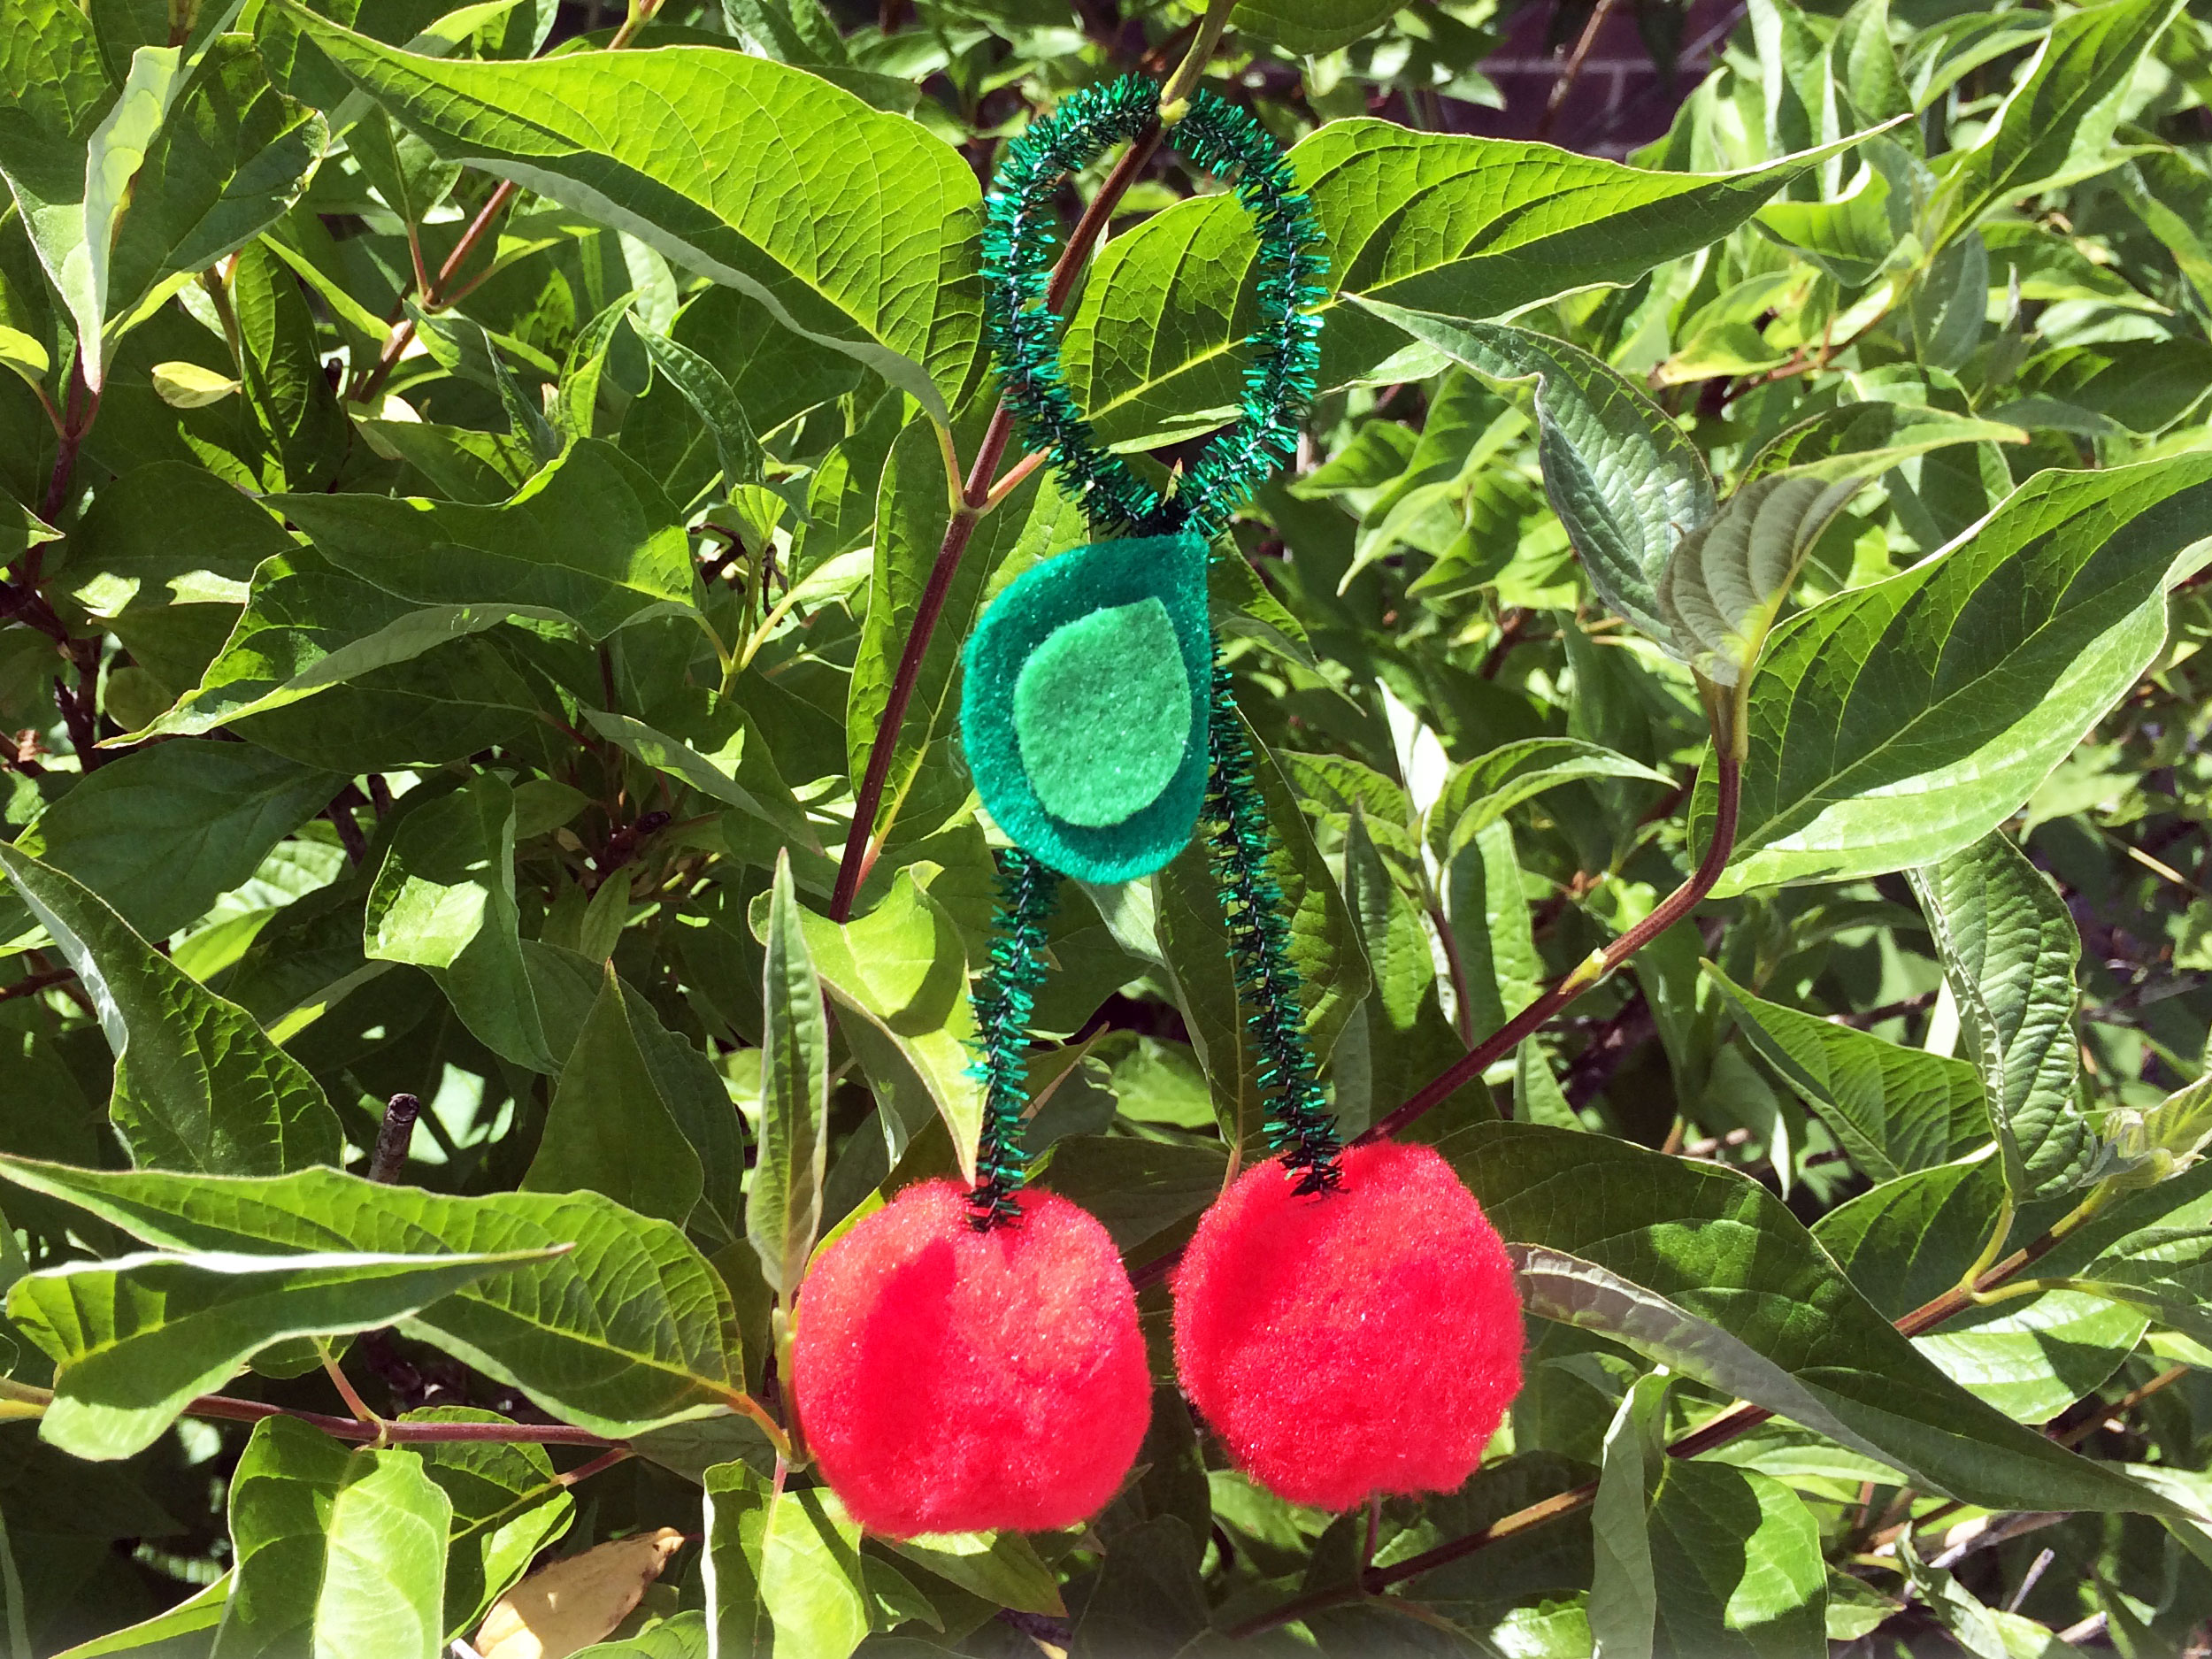 DIY Cherry Ornament - Hanging Outside on Tree | Ornament Shop